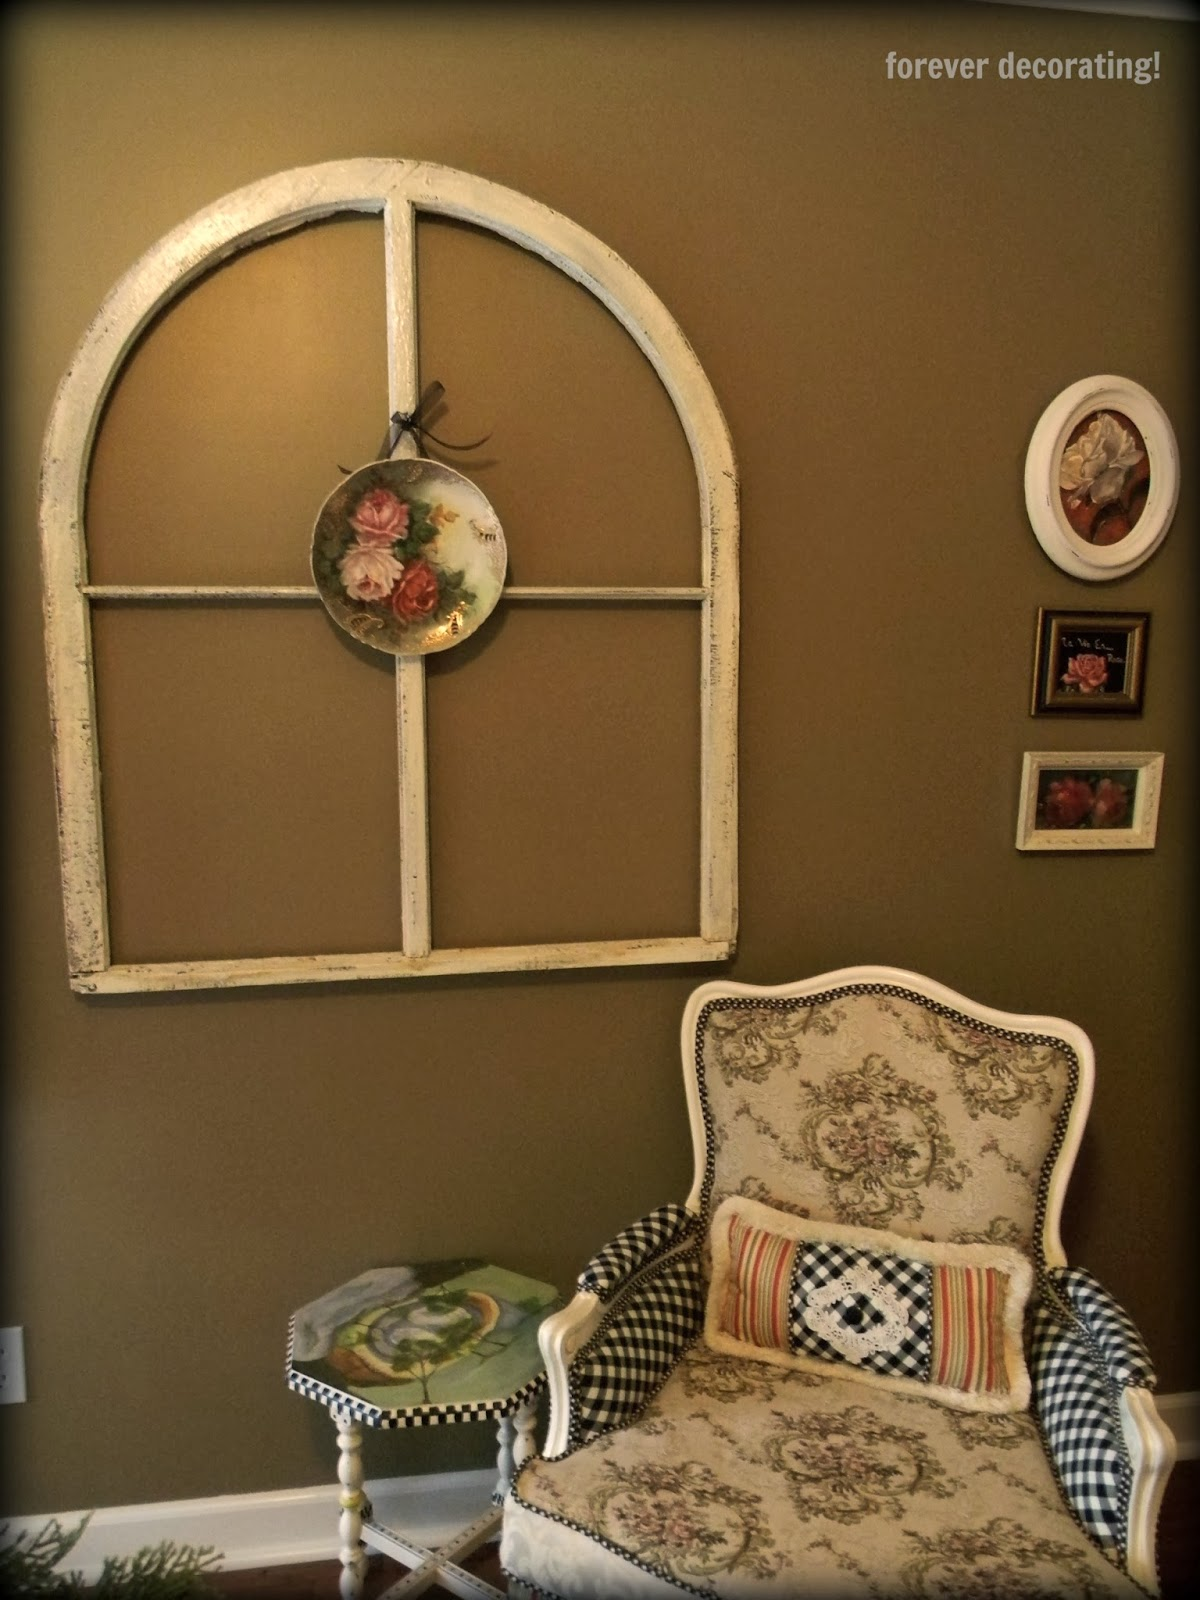 Forever decorating arch window find for Arch window decoration